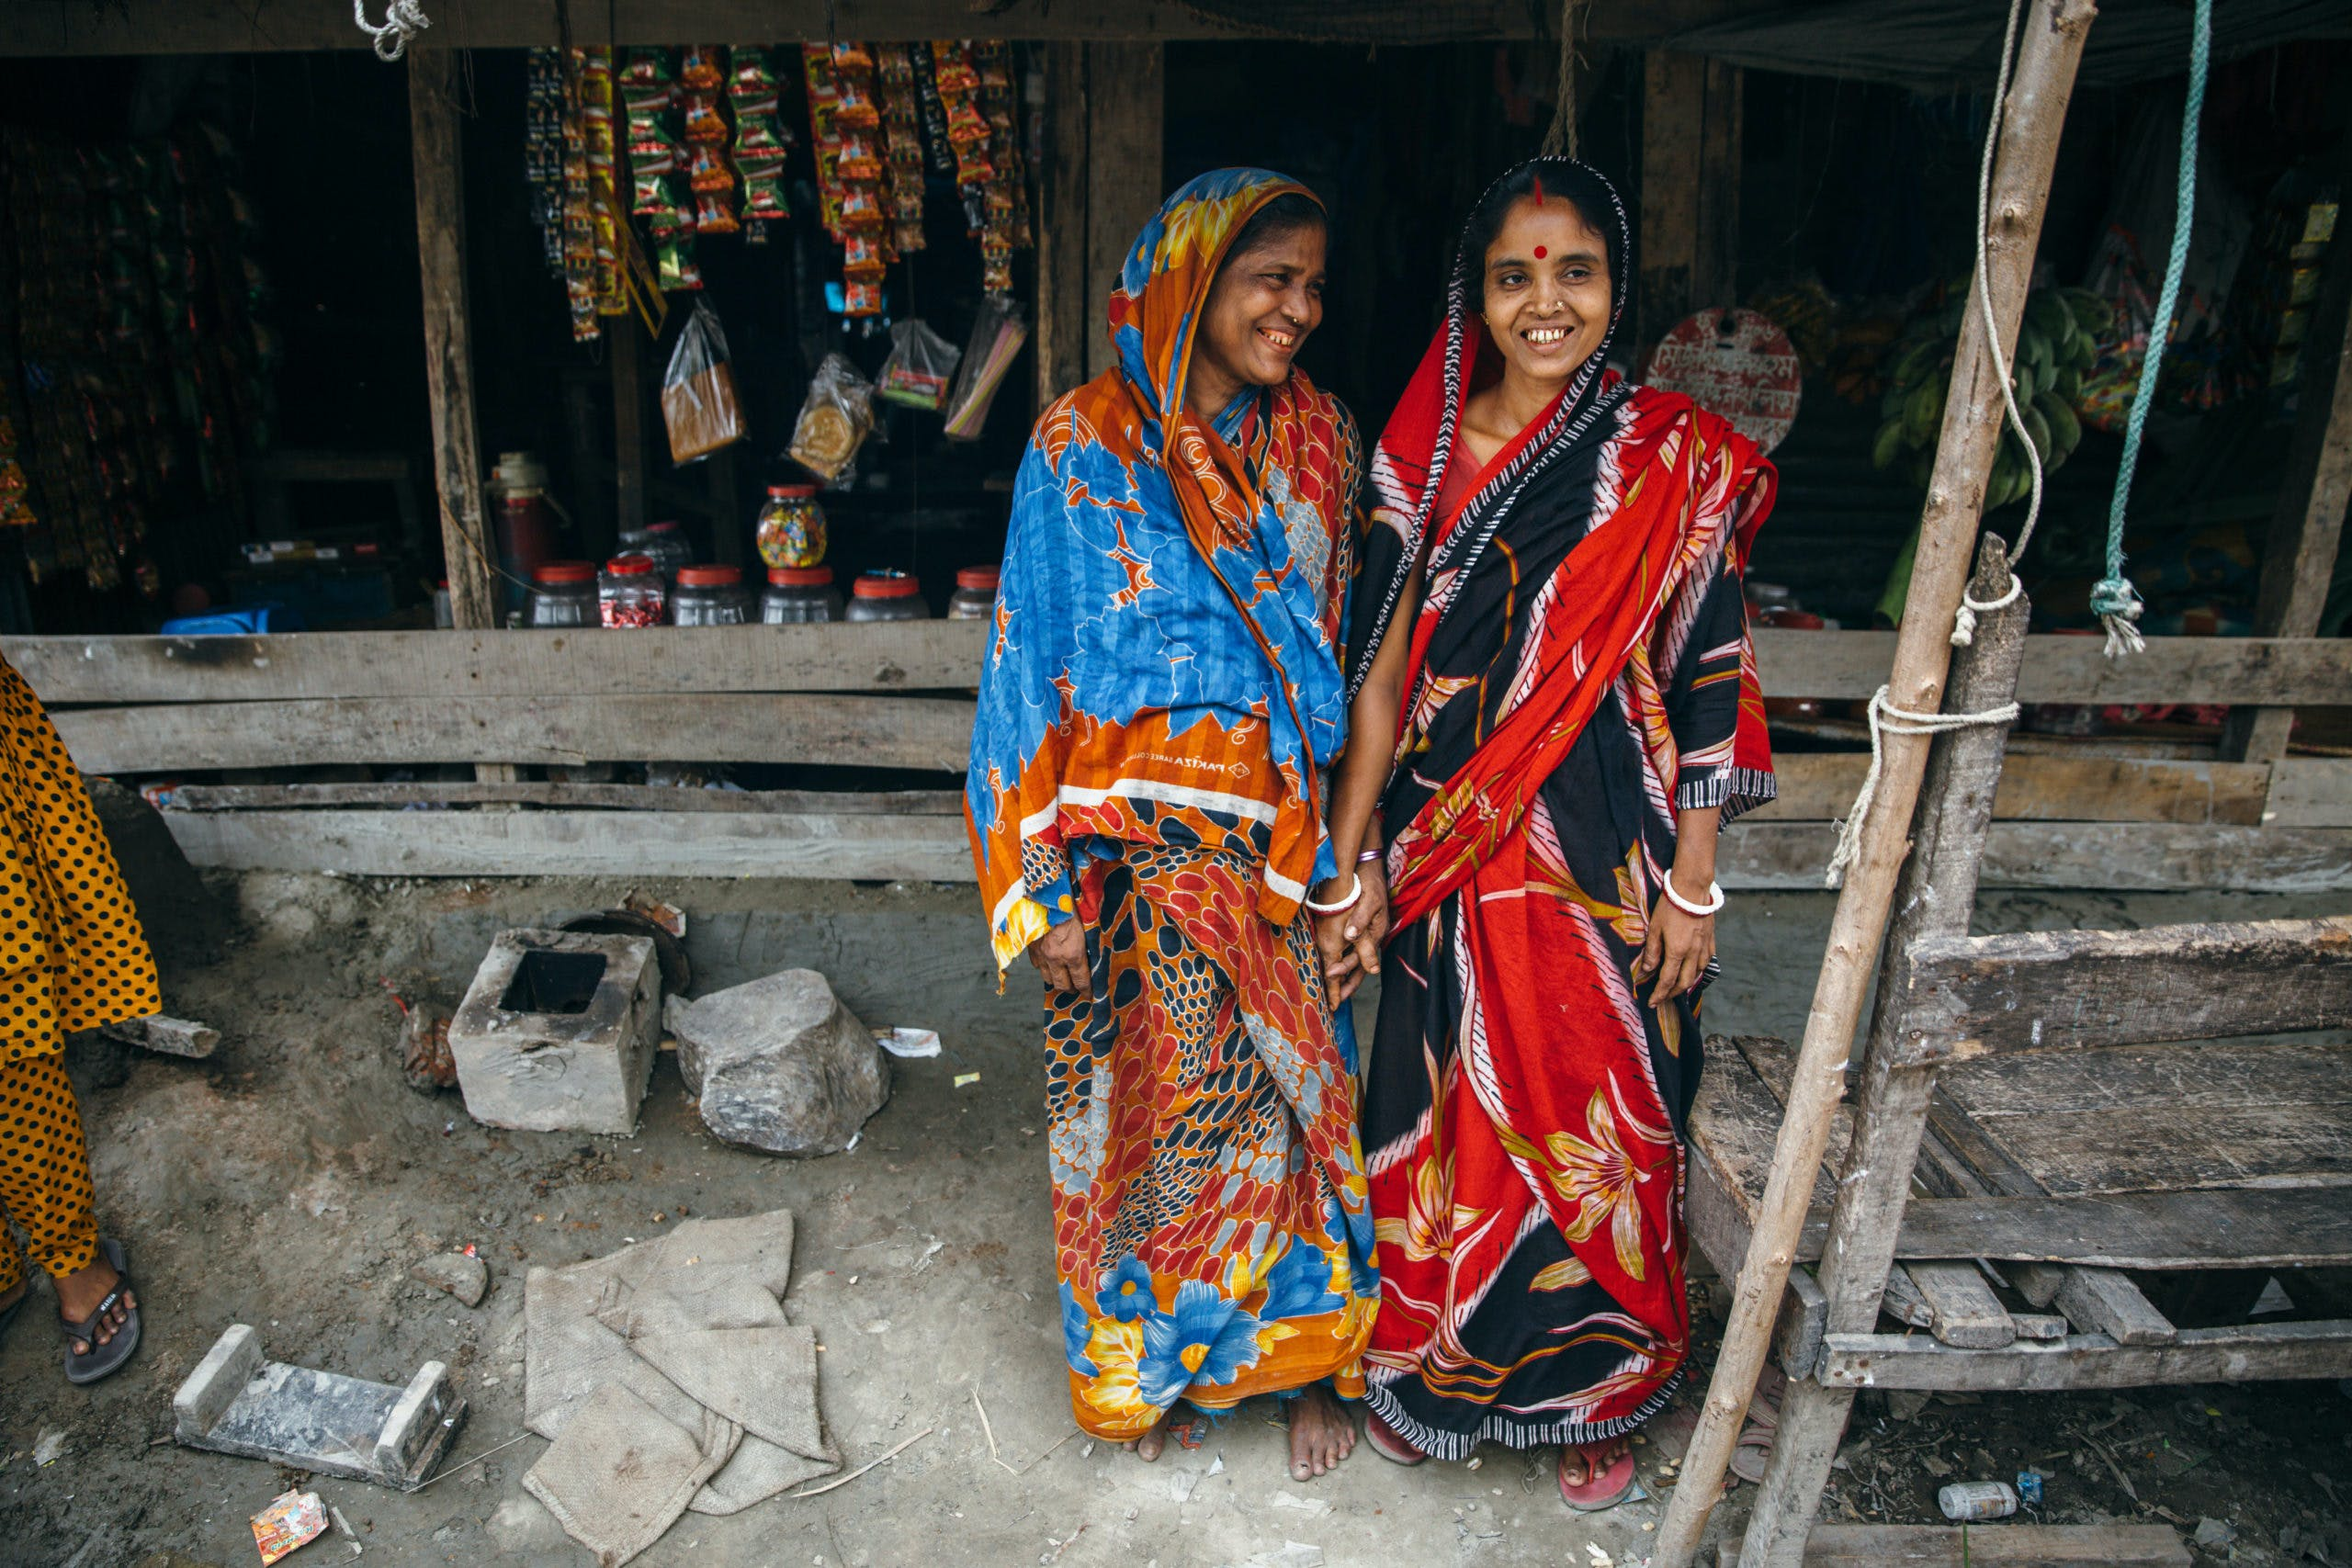 Two women from Bangladesh smiling and holding hands